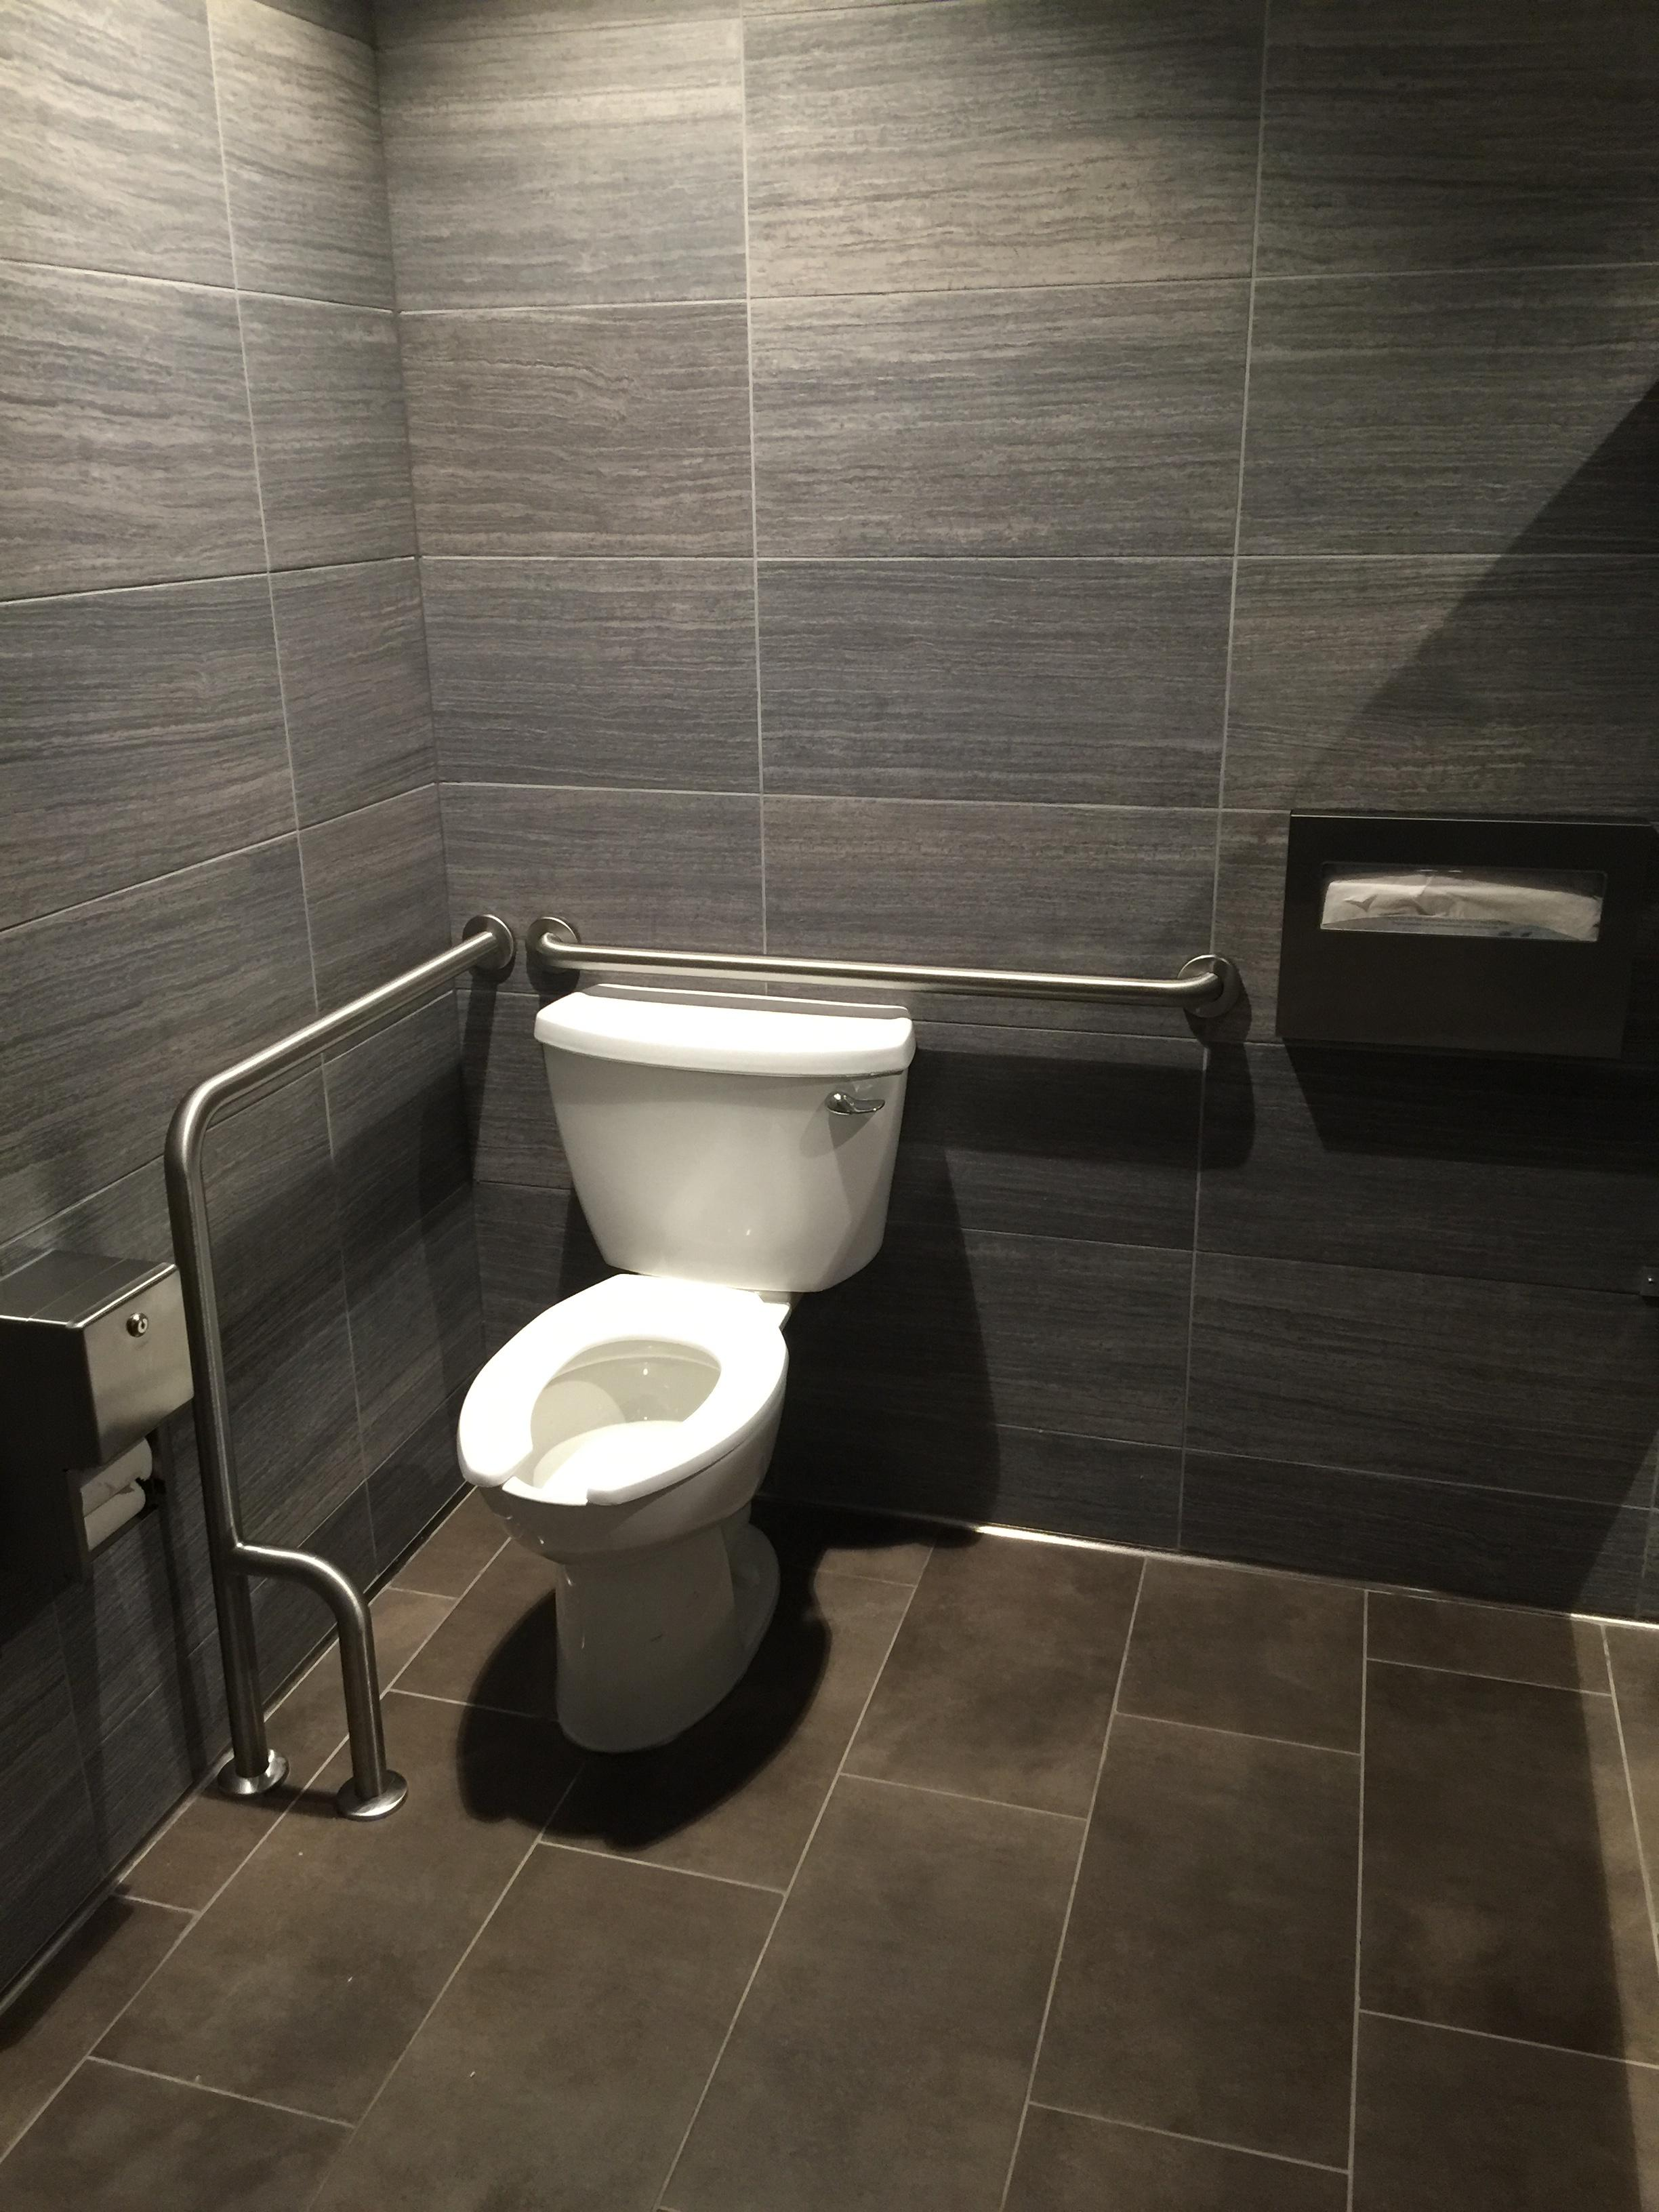 Incredible Ada Restroom Requirements What Is Wrong With This Picture Beutiful Home Inspiration Aditmahrainfo